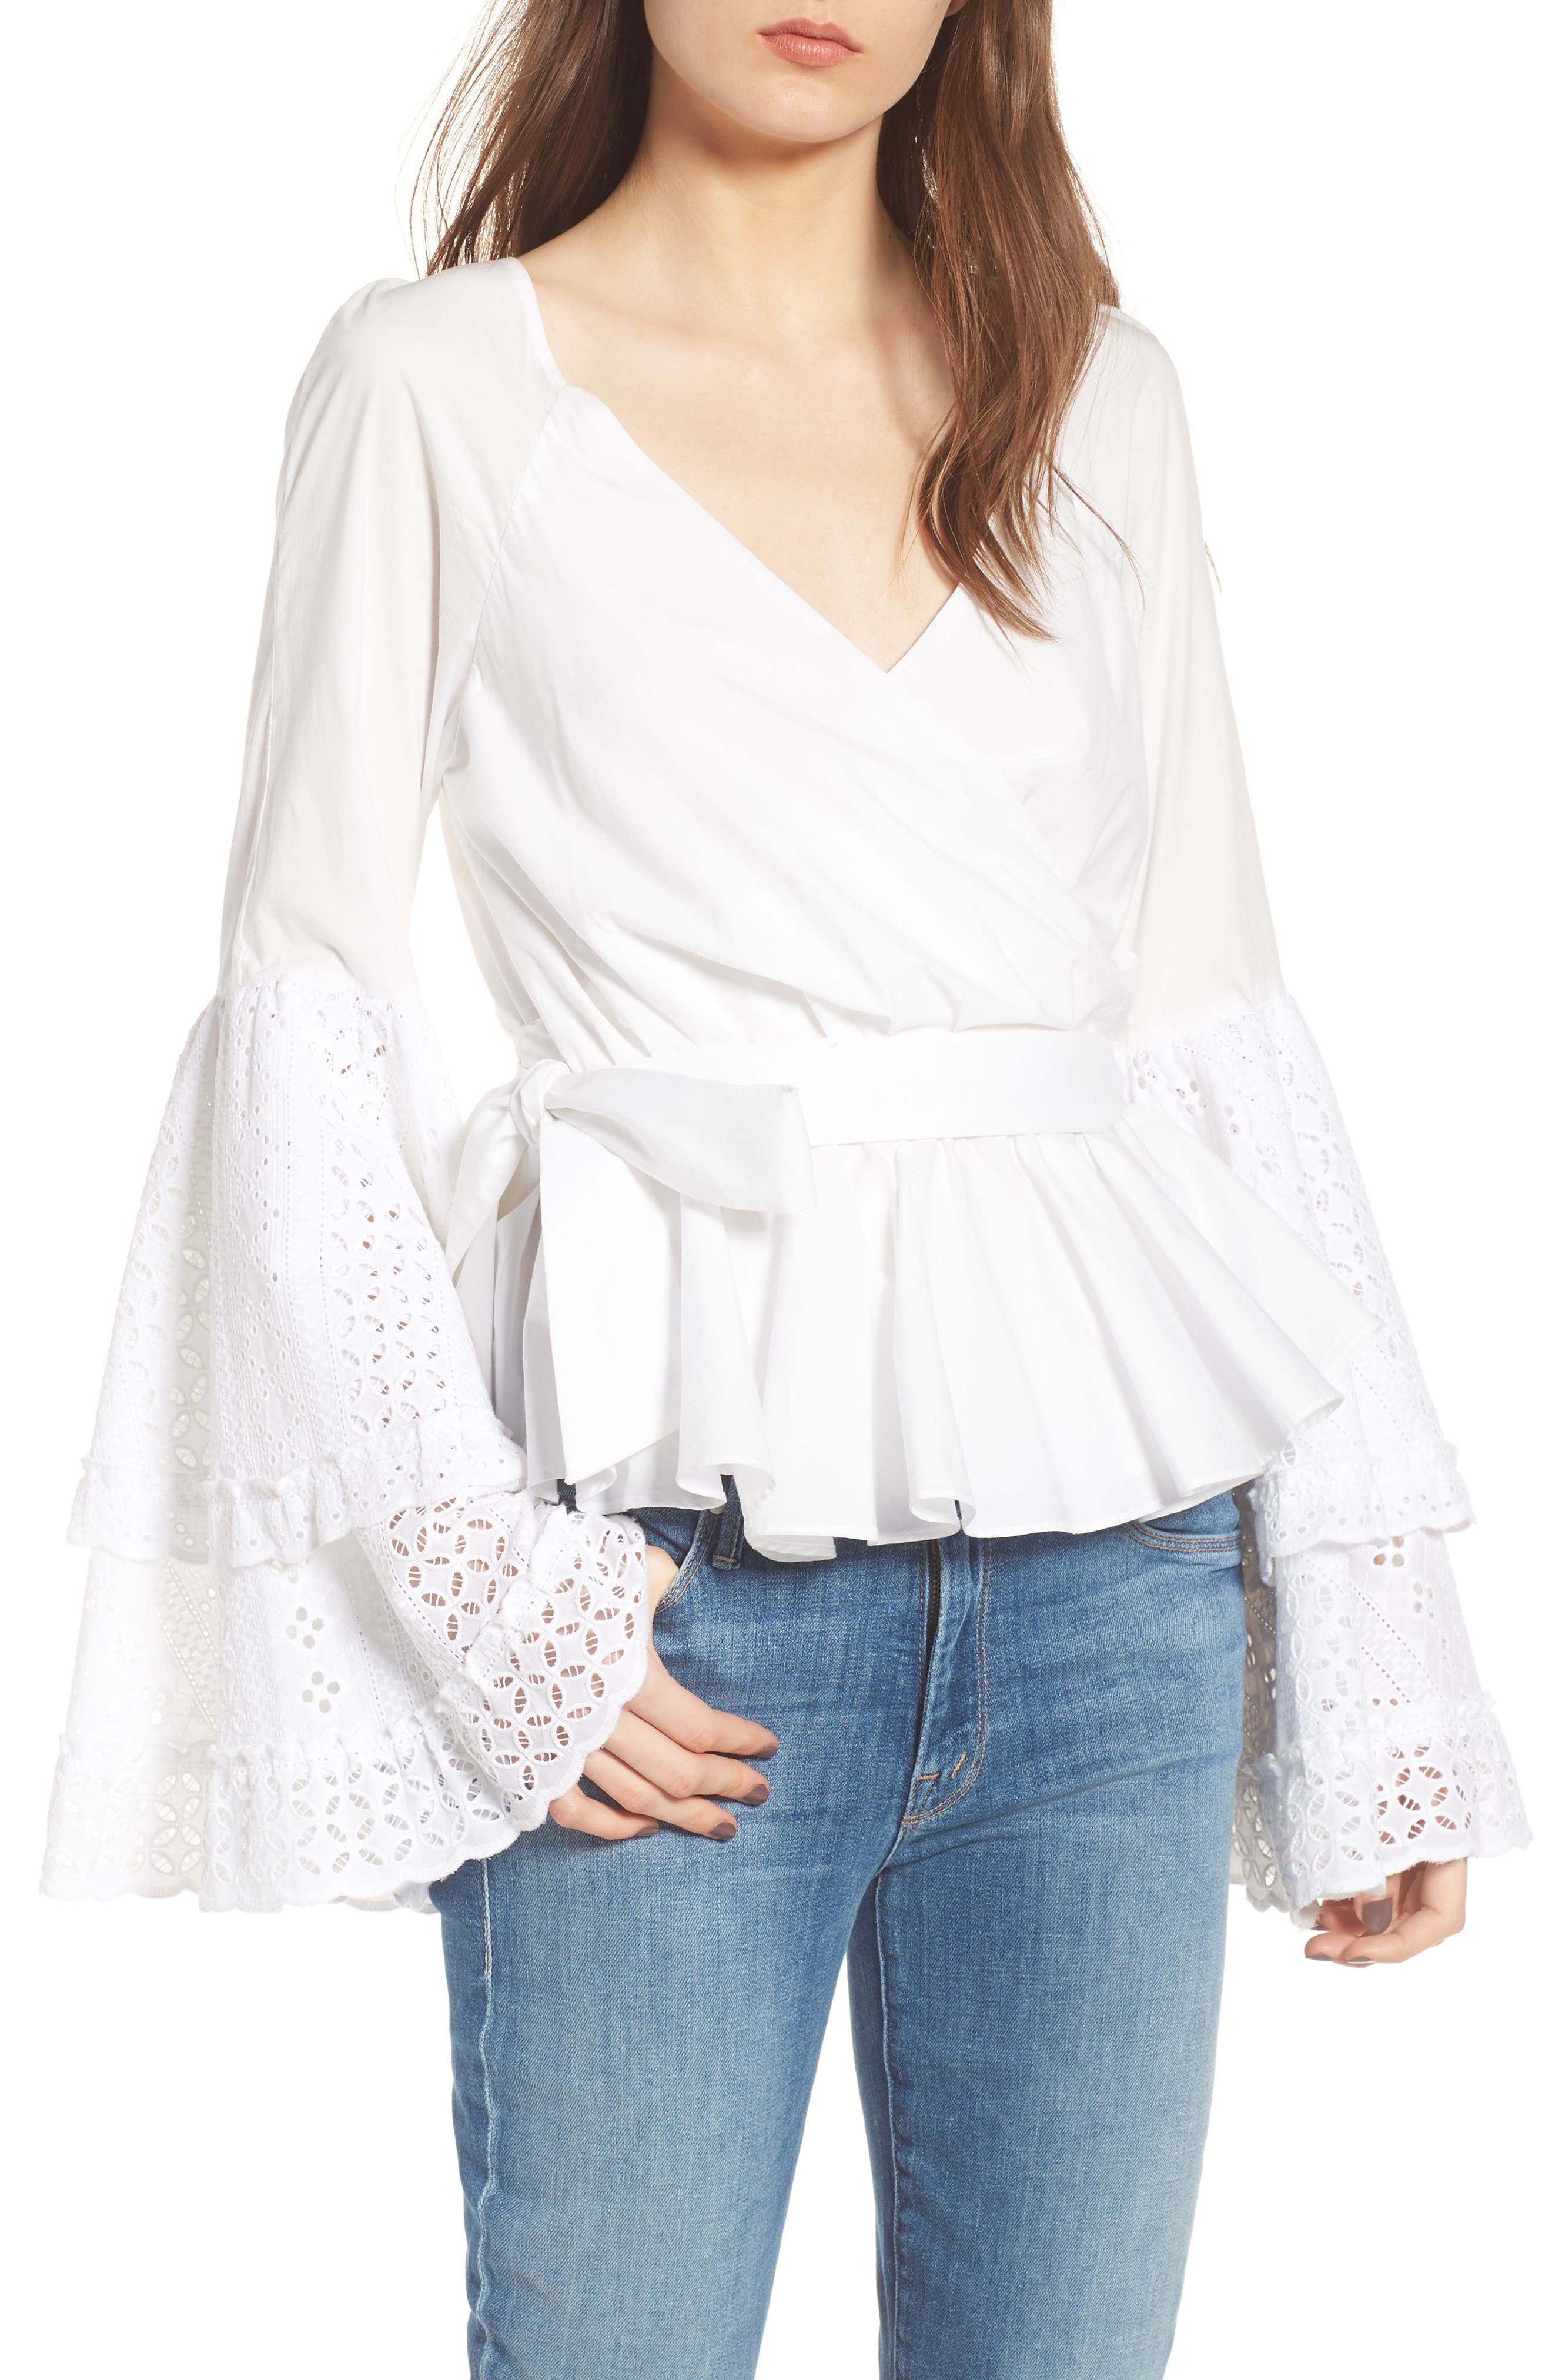 Melly Top,                         Main,                         color, White